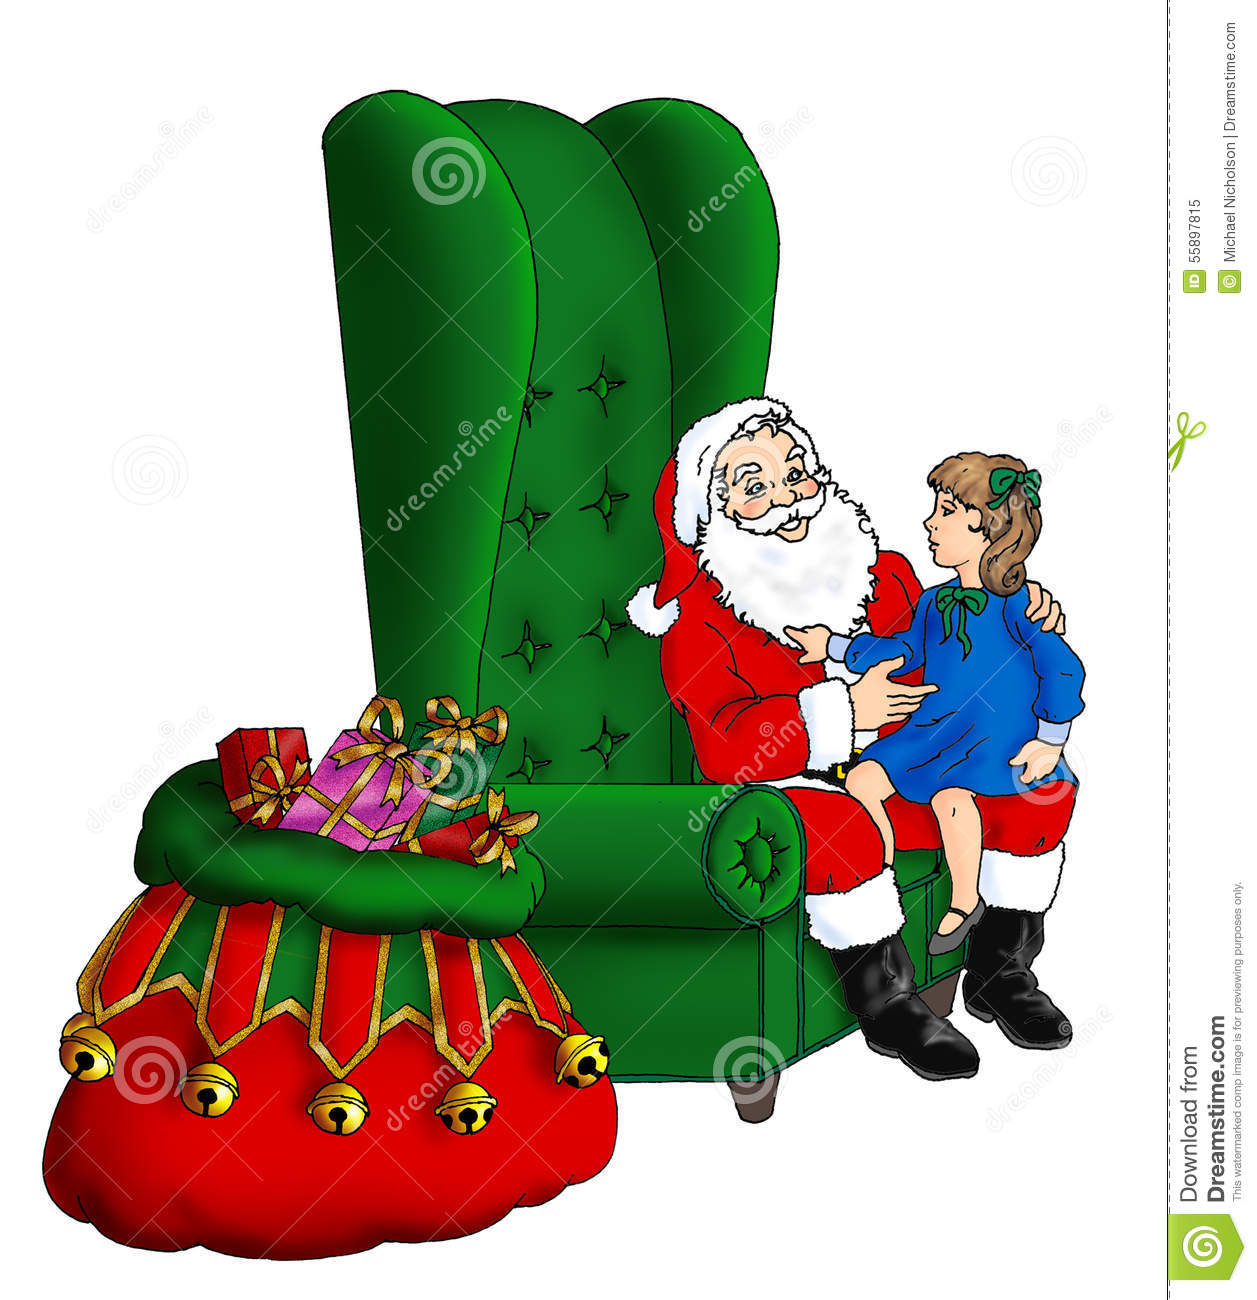 Best Reading Chair For Bad Back Santa Sitting In His Chair Stock Photography